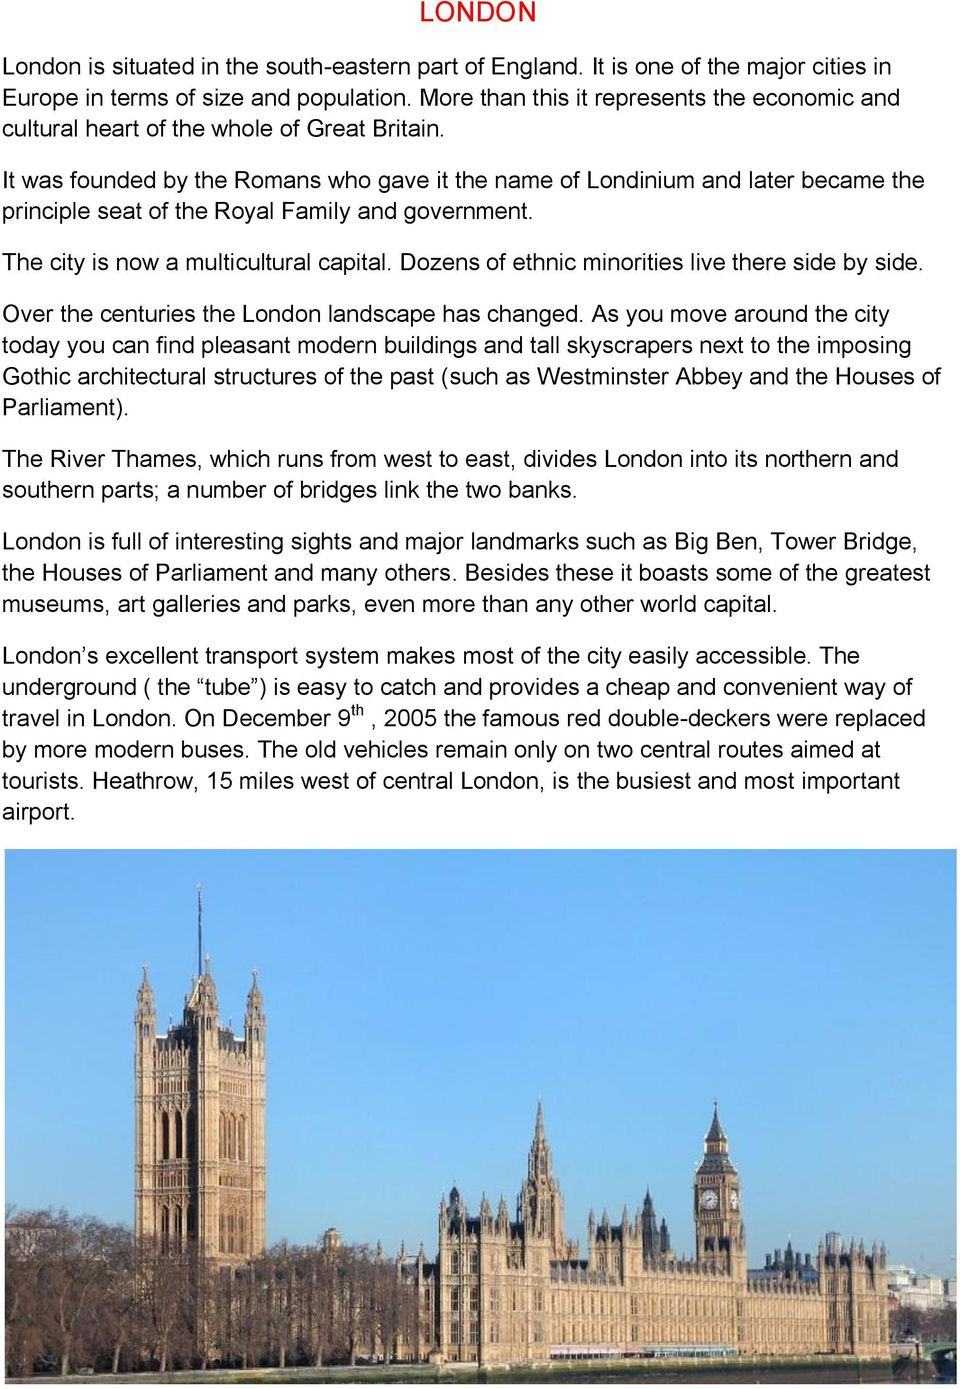 It was founded by the Romans who gave it the name of Londinium and later became the principle seat of the Royal Family and government. The city is now a multicultural capital.